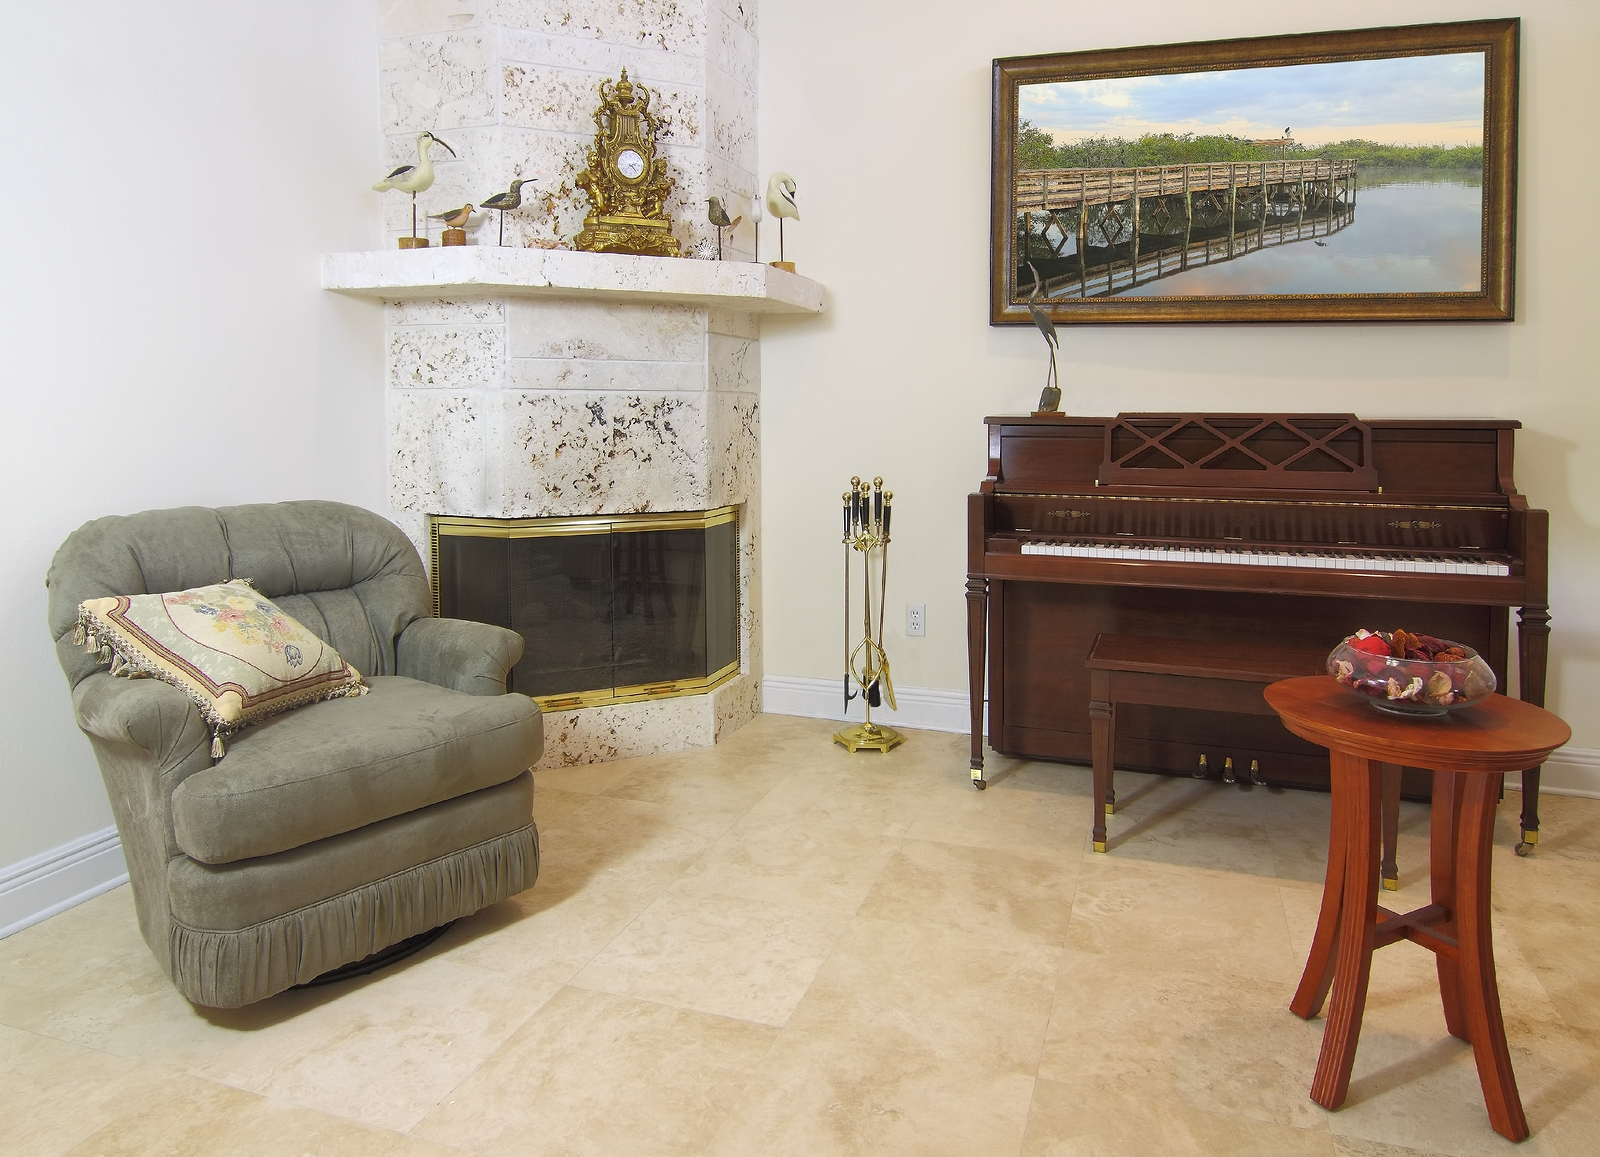 View of a beautiful formal modern sitting nook to relax or read a book